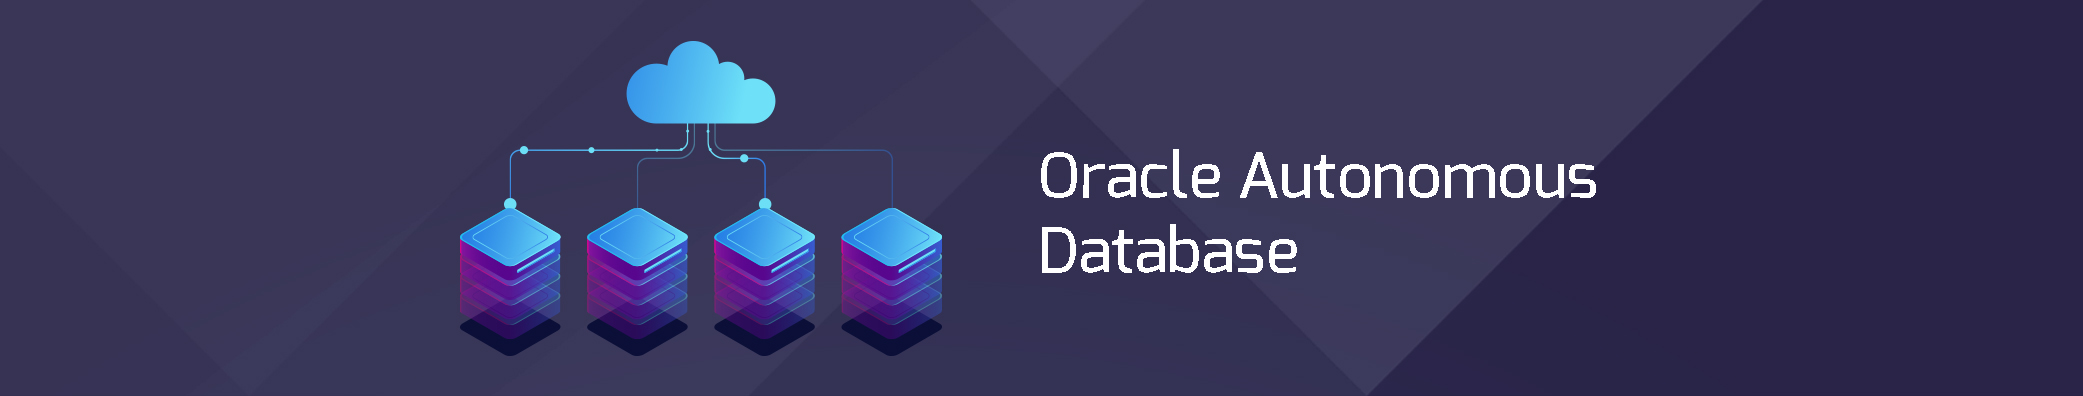 Oracle Autonomous Database Dedicated for E-Business Suite Customers